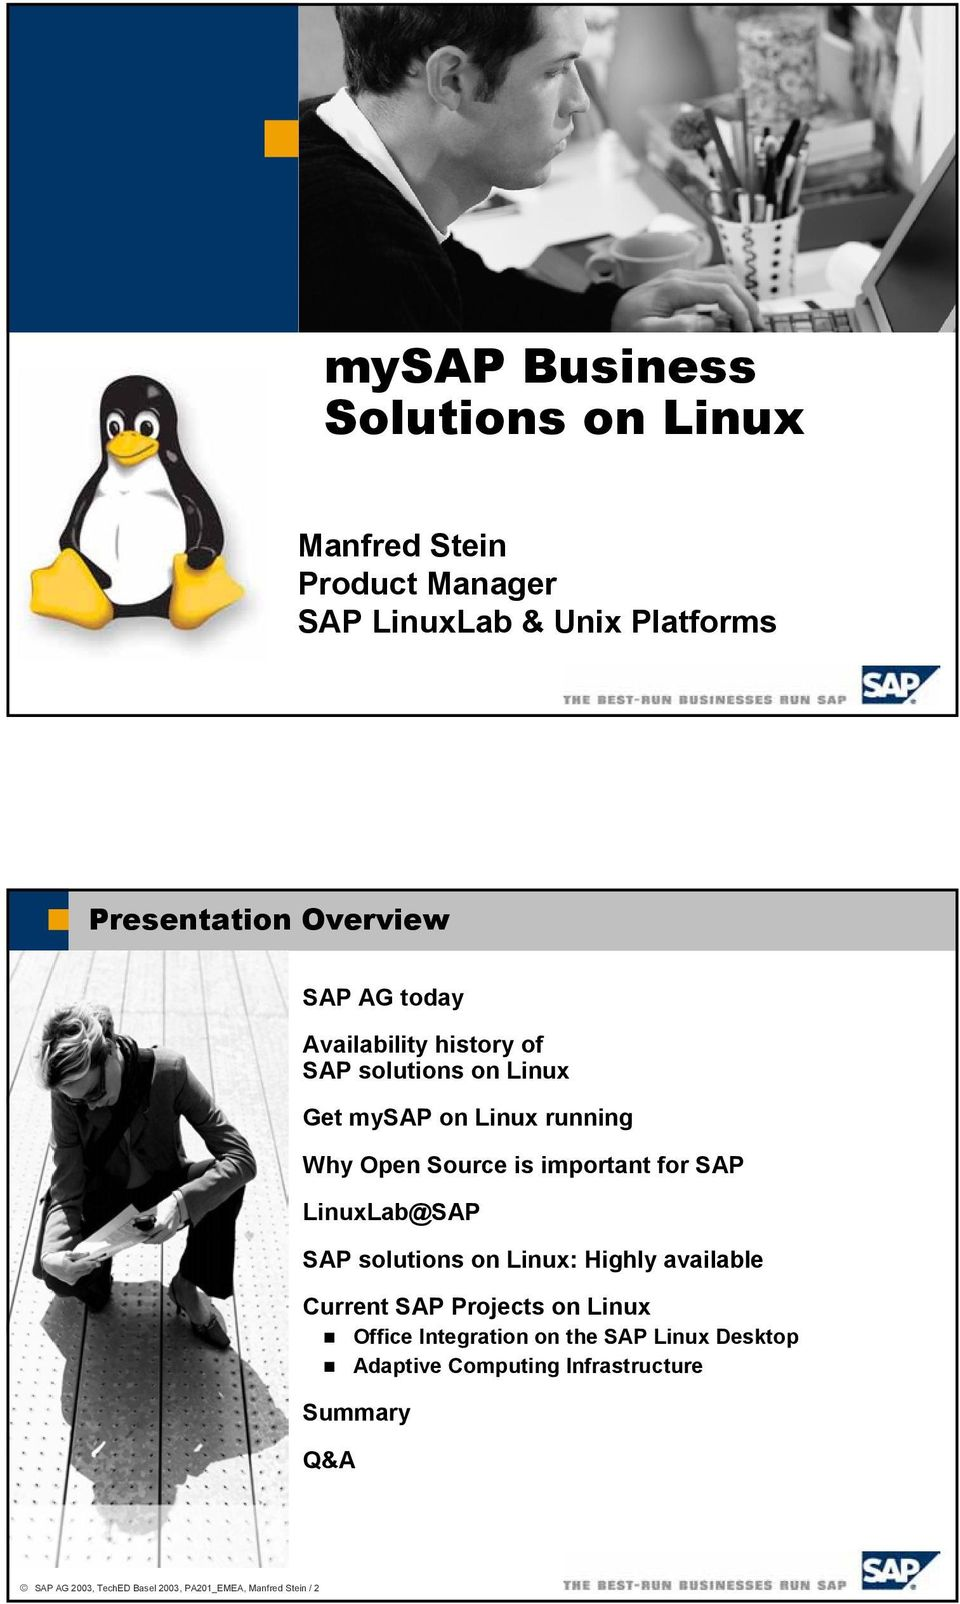 for SAP LinuxLab@SAP SAP solutions on Linux: Highly available Current SAP Projects on Linux Office Integration on the